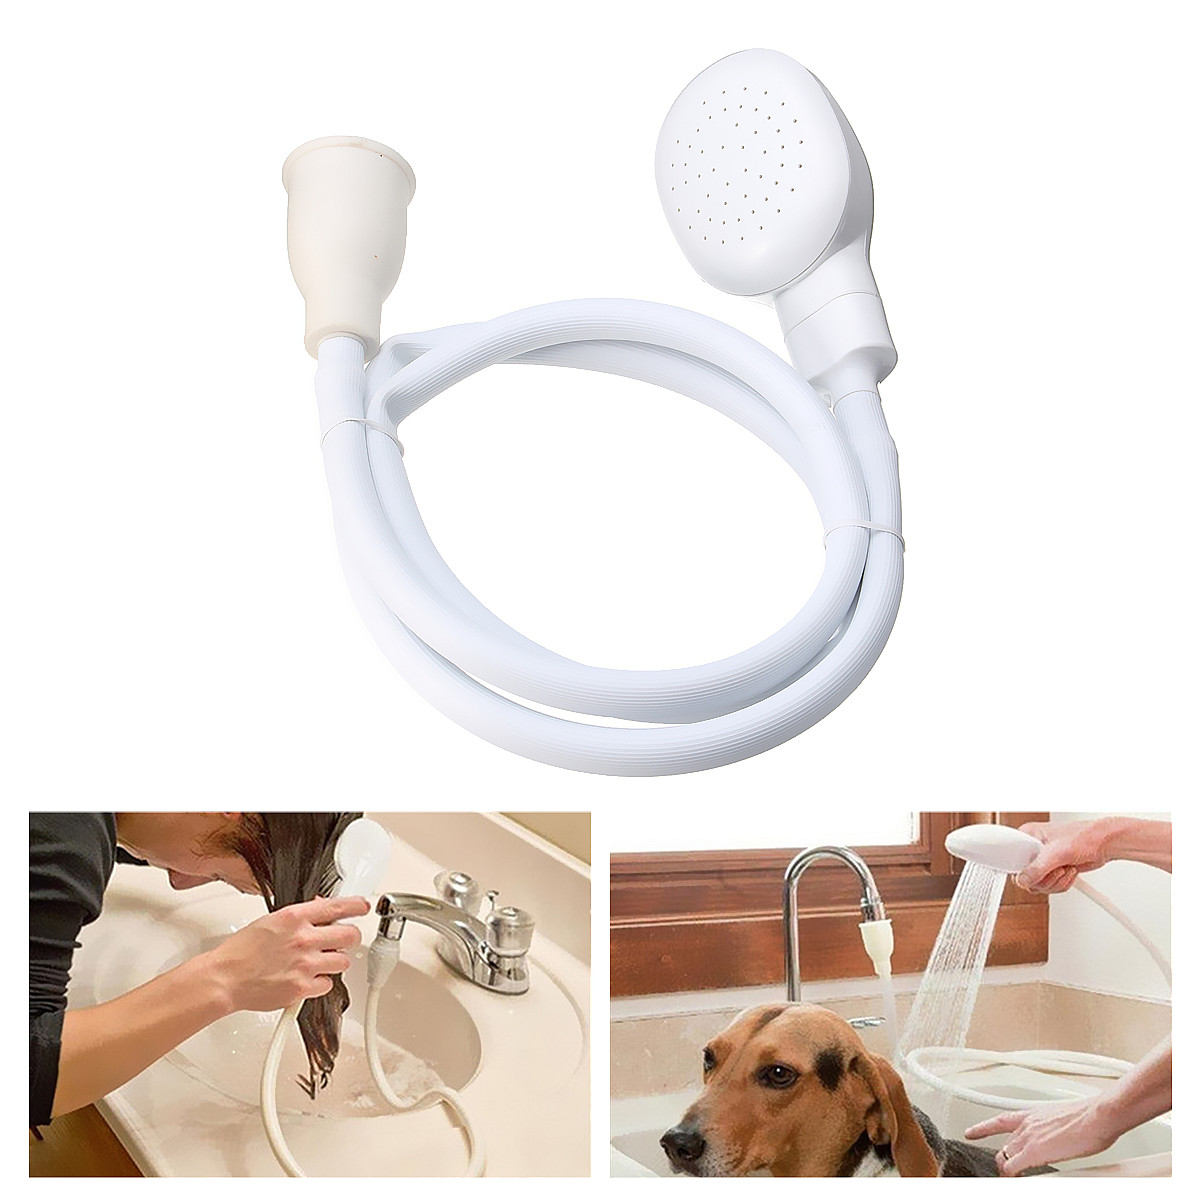 Handheld Sink Shower Head Spray Drains Strainer Pet Bath Hose Sink Washing Hair Pet Dog Hair Wash